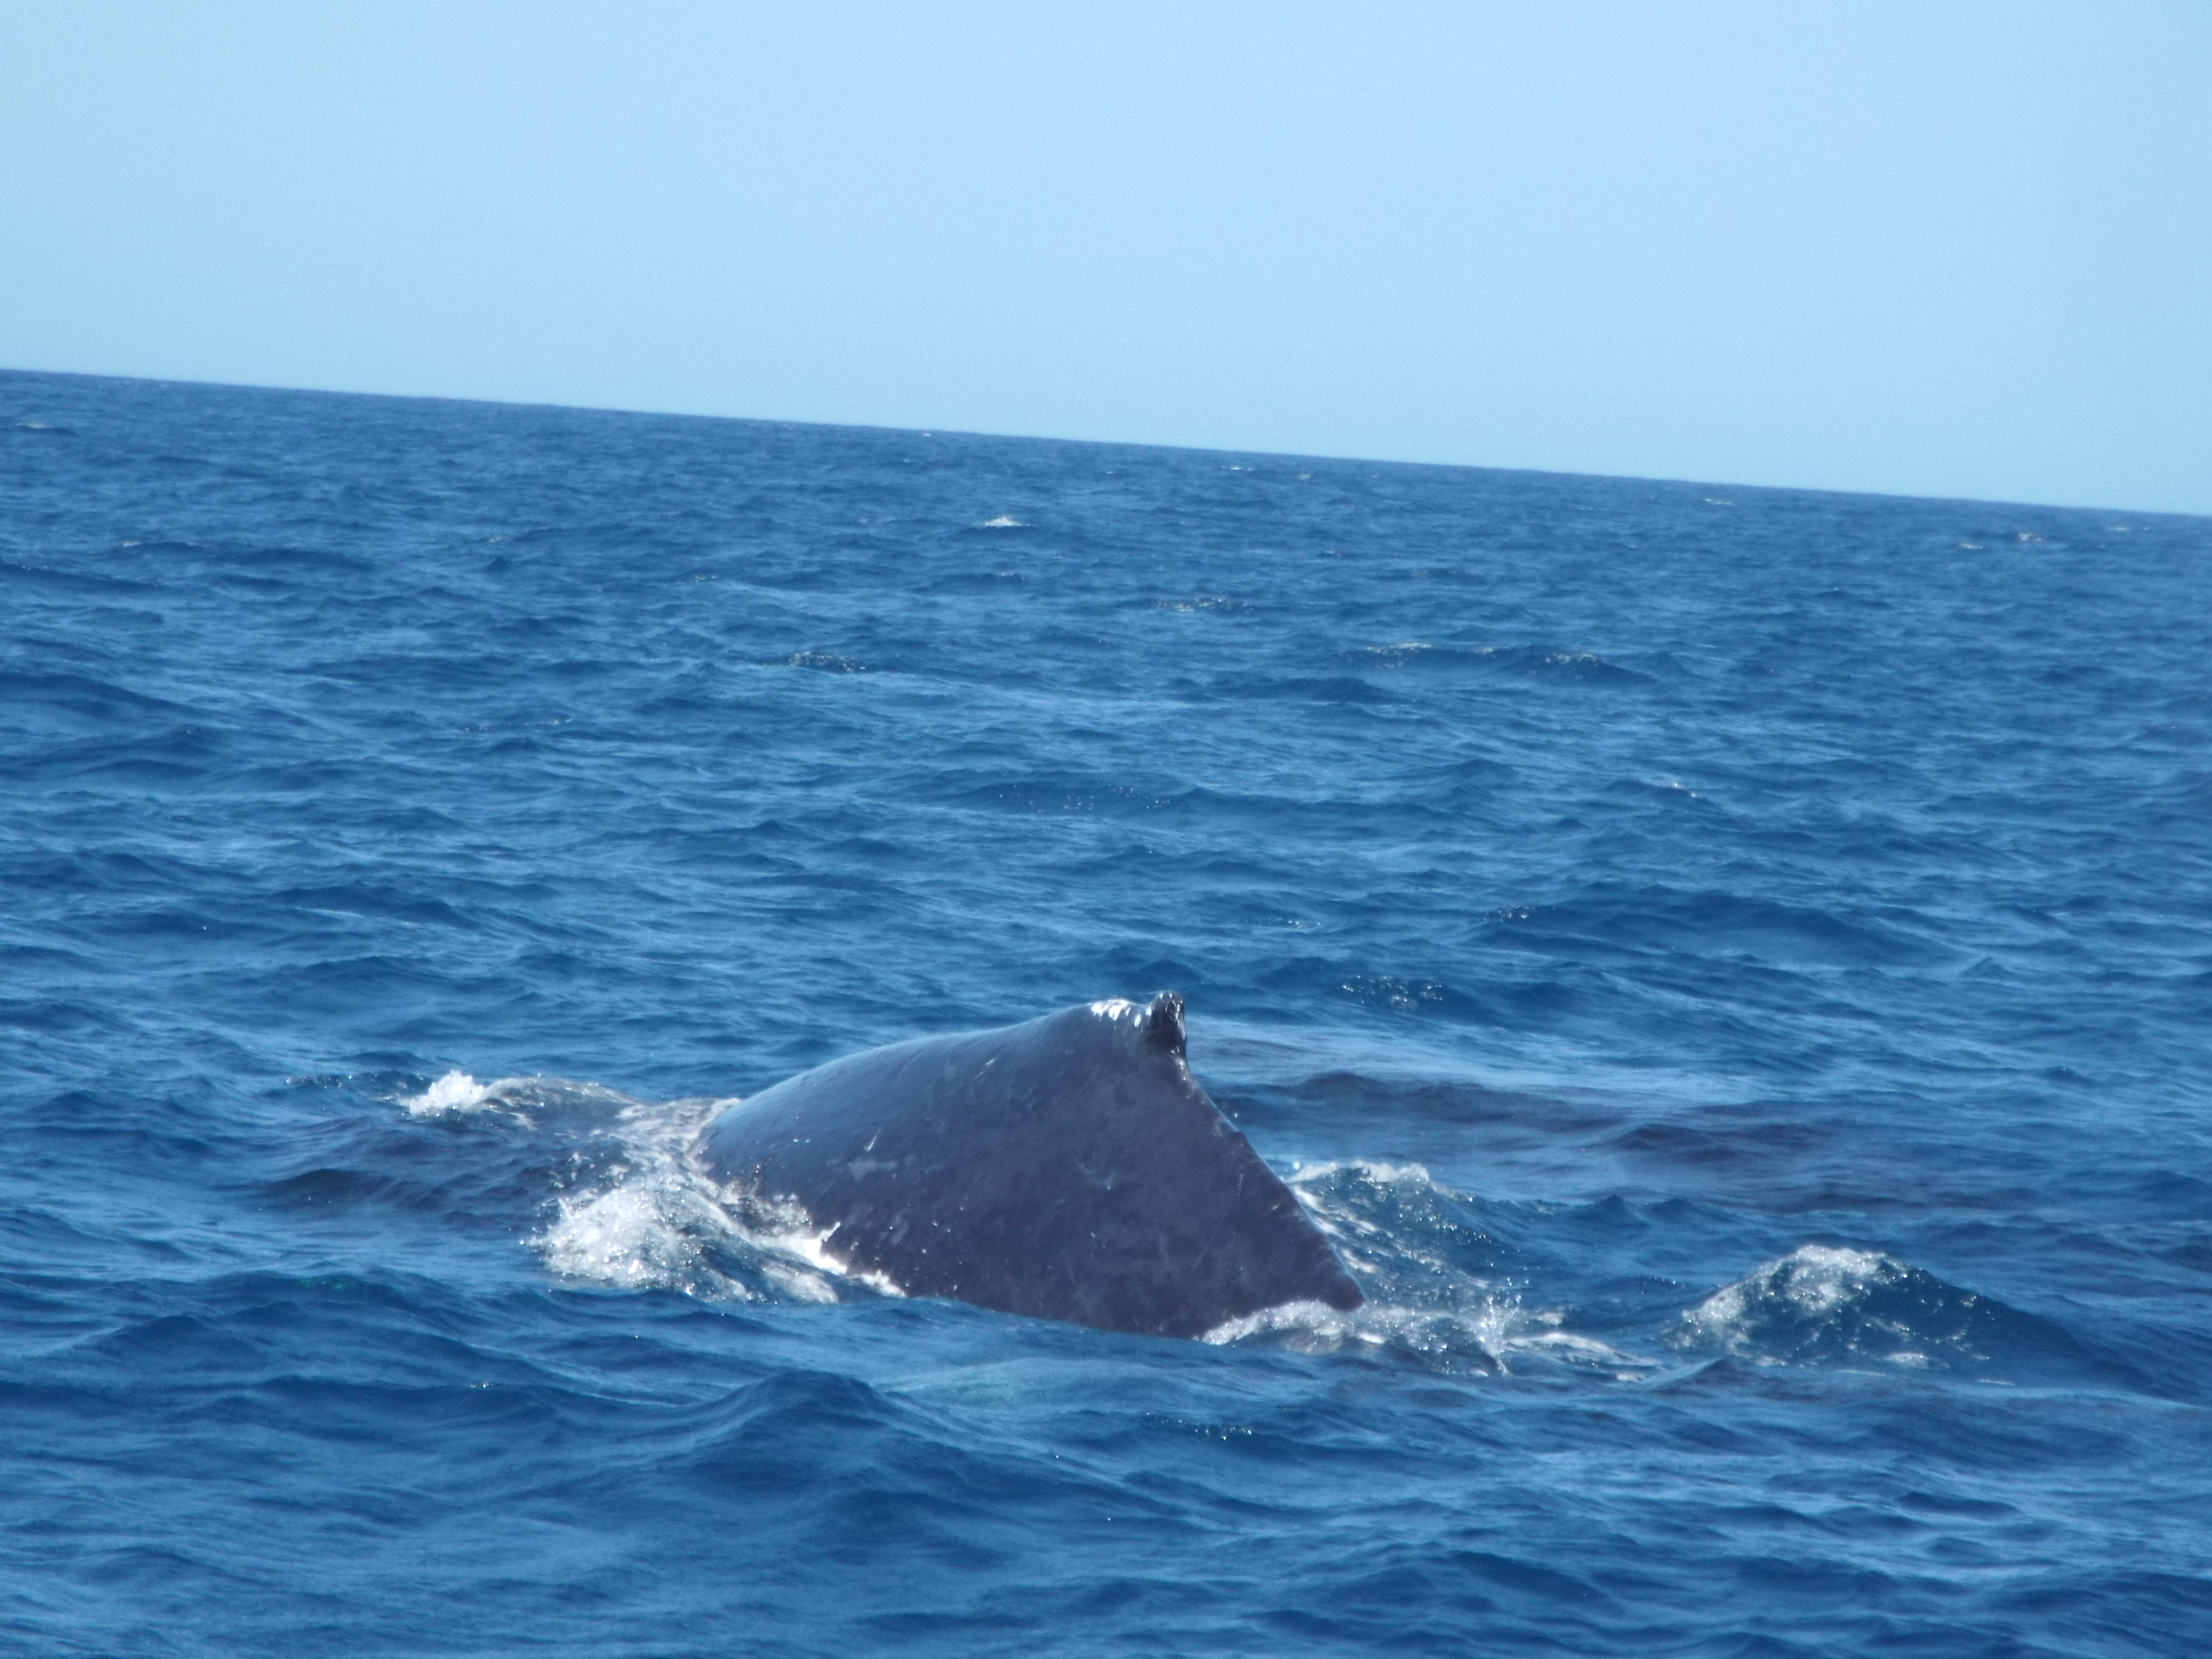 Whale going under boat